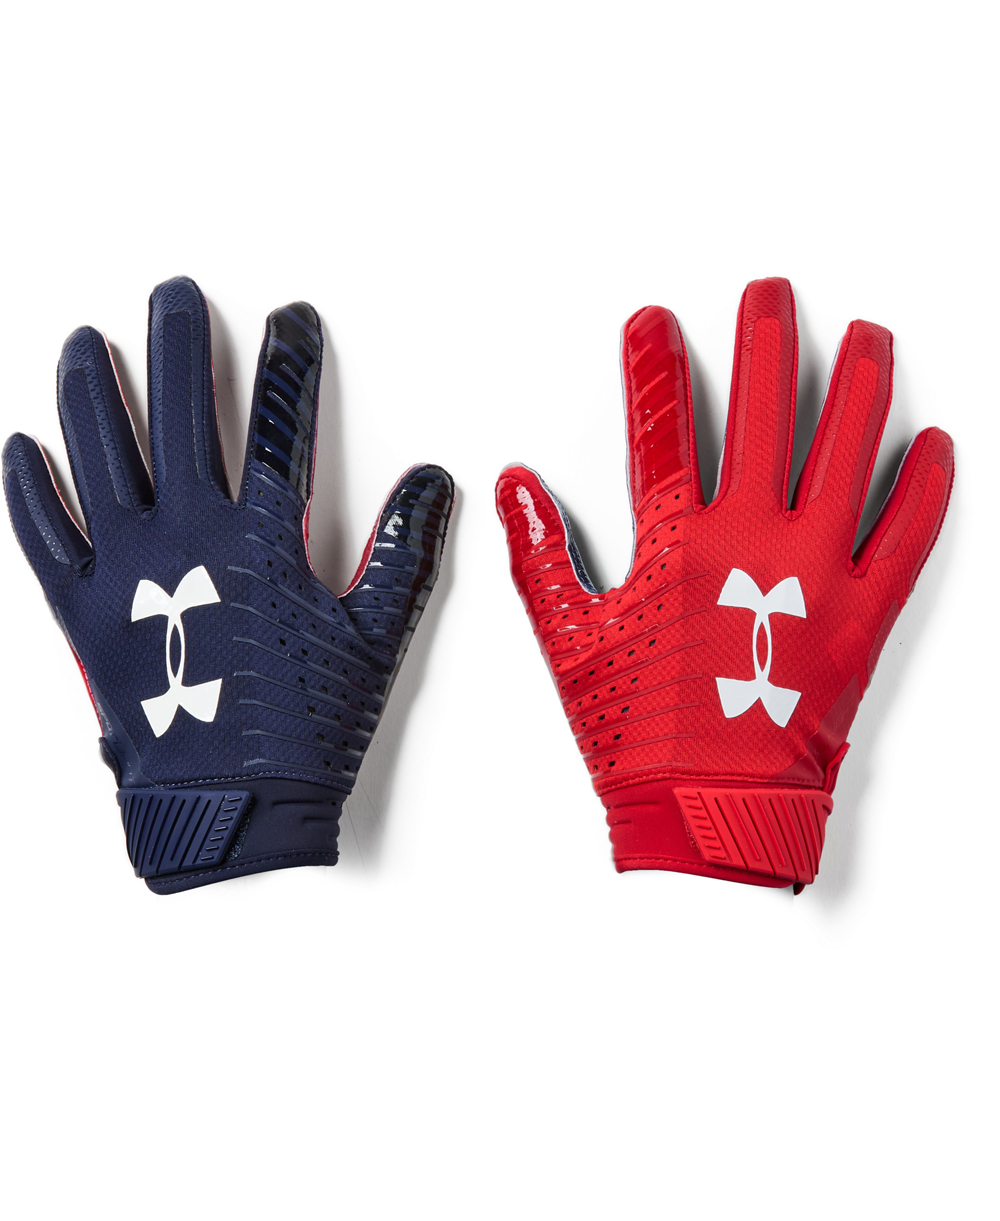 1ae4fda643b86 Under Armour Spotlight LE Men's Football Gloves Midnight Navy 410